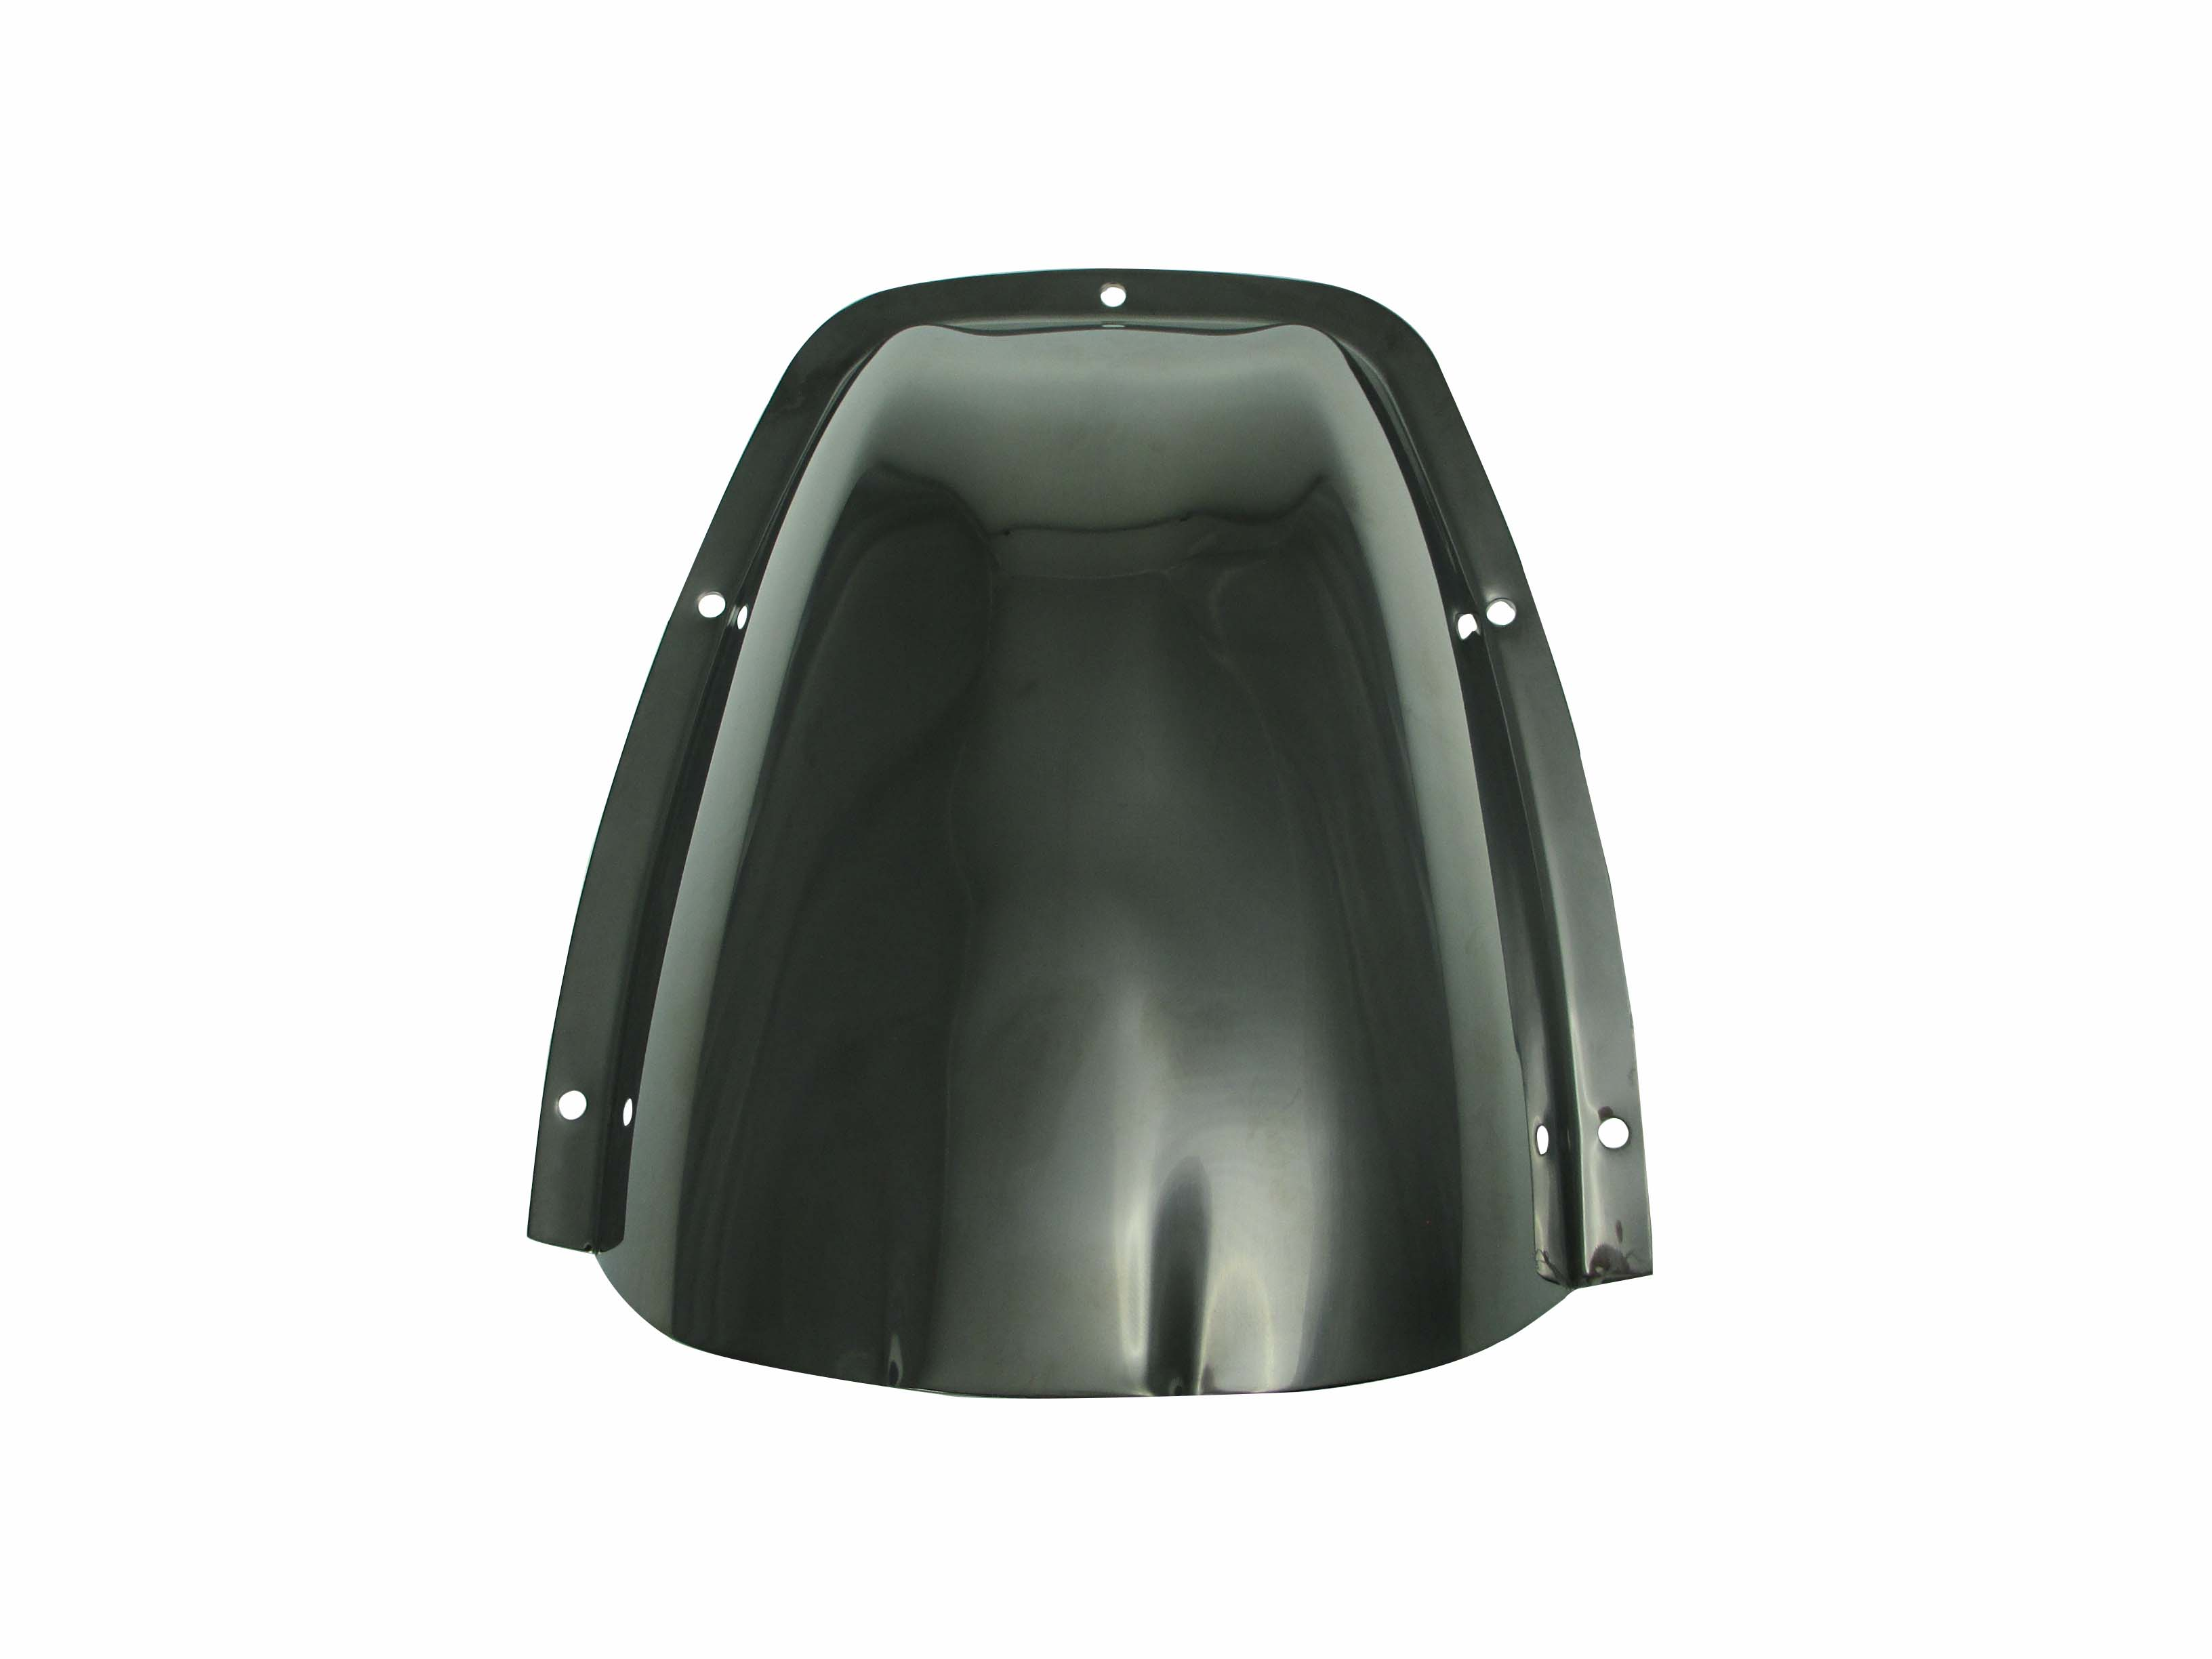 Qty2 Large Black Stainless Steel Clam Shell Ventilators or Wire Covers for Boats